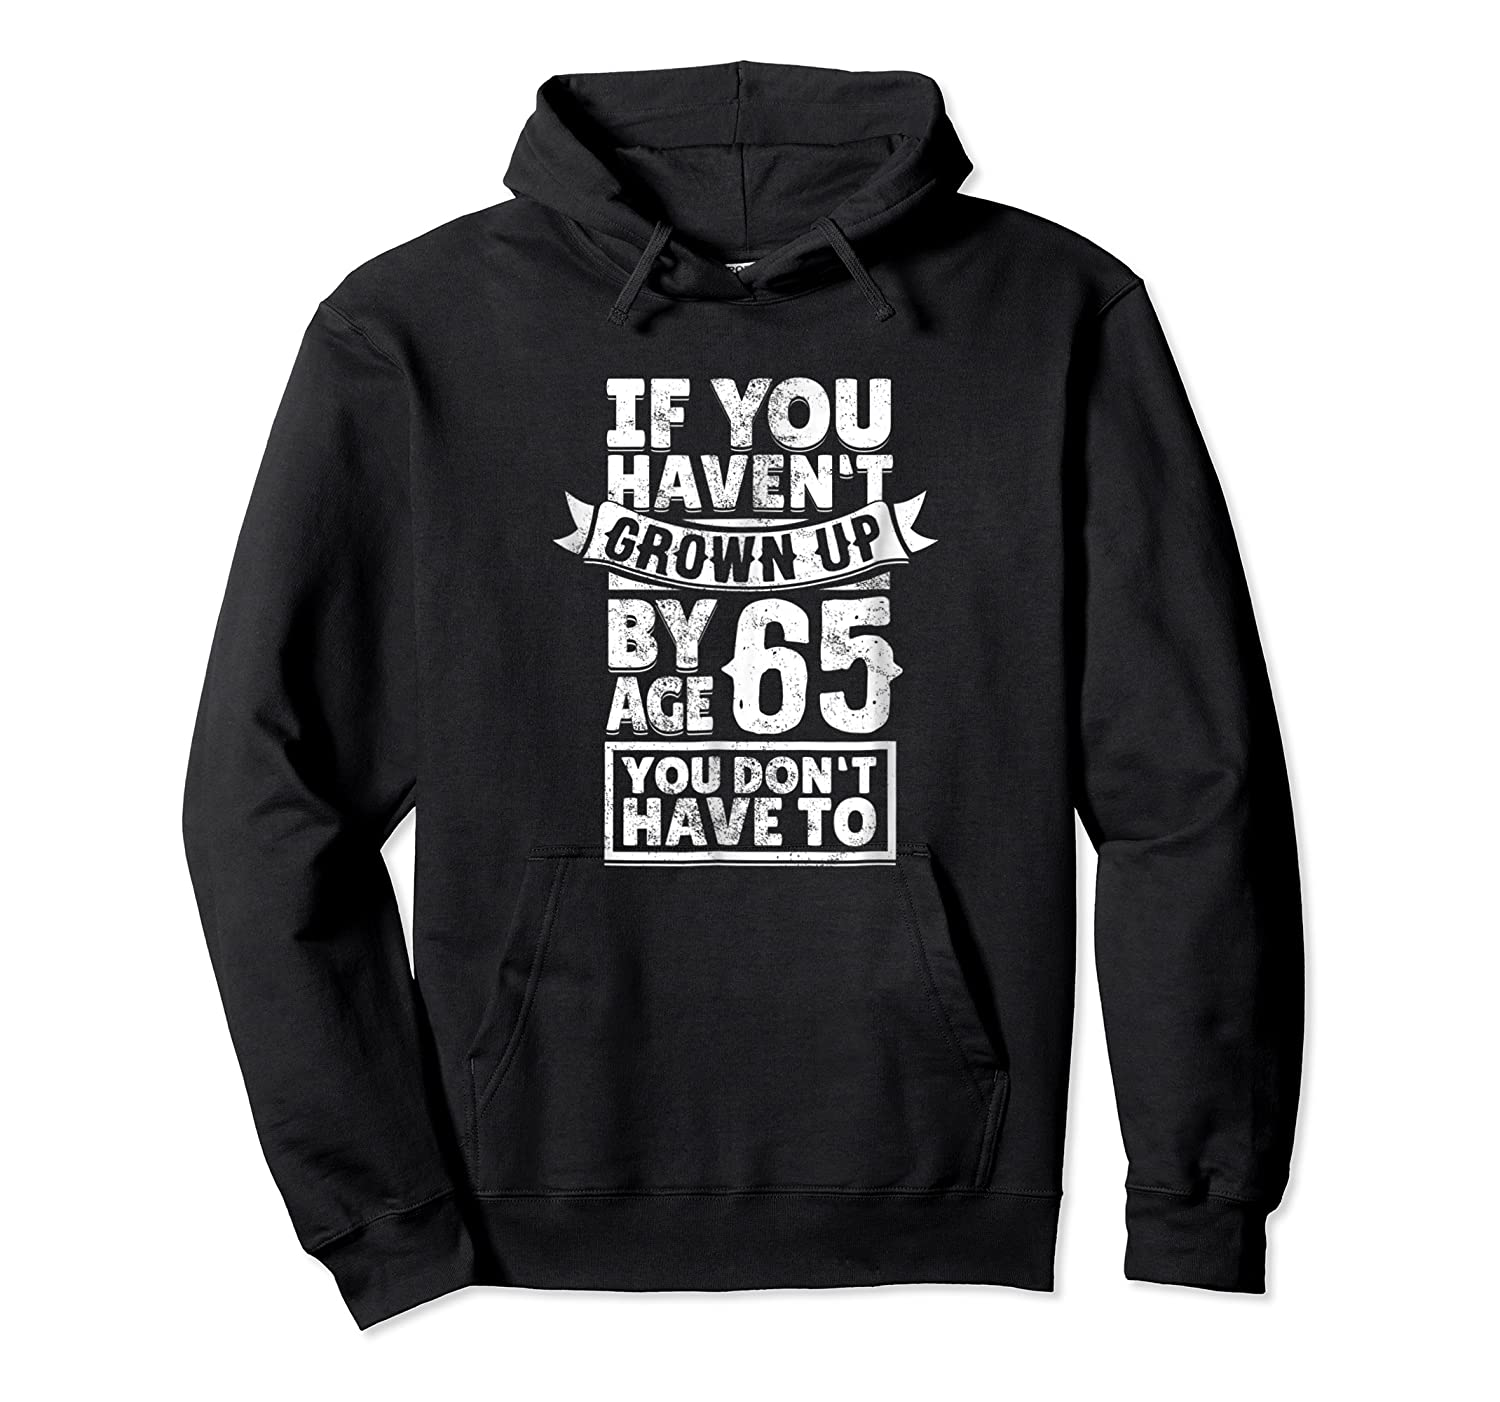 65th Birthday Saying - Hilarious Age 65 Grow Up Fun Gag Gift Shirts Unisex Pullover Hoodie